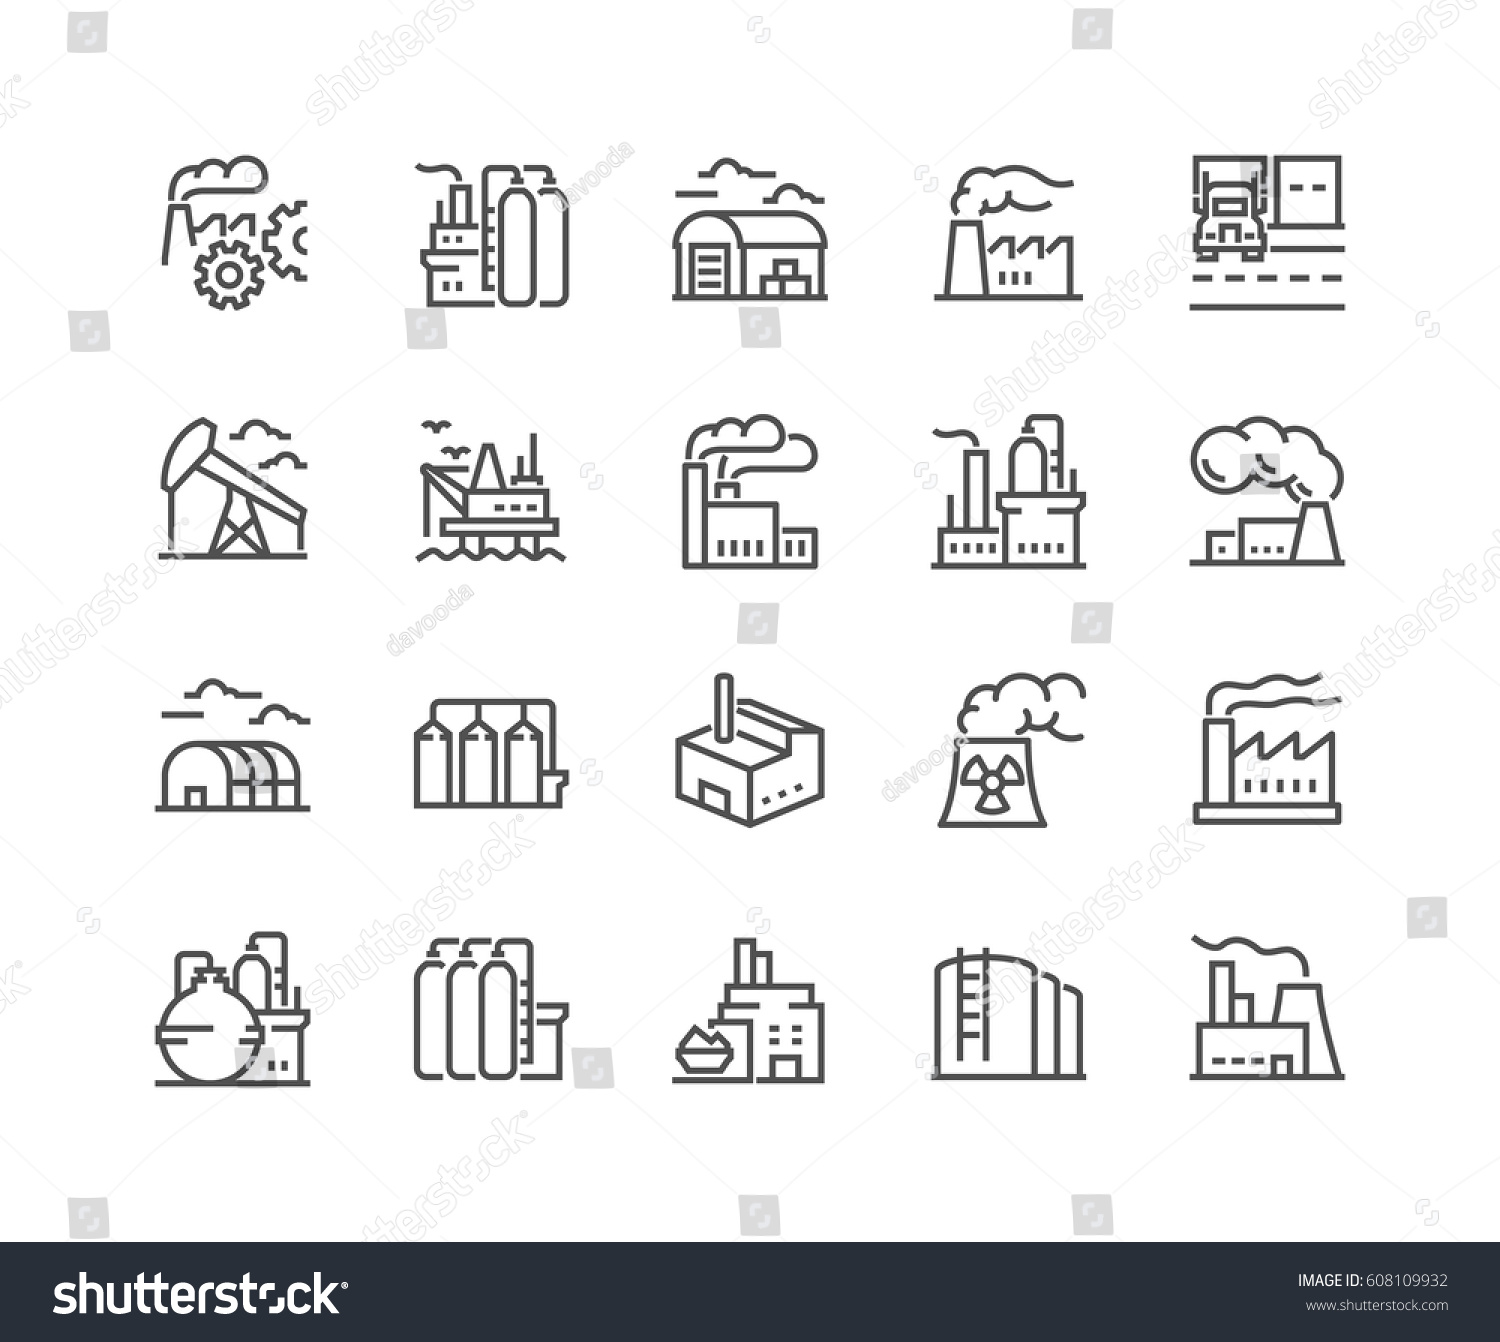 Simple Set of Factories Related Vector Line Icons.  Contains such Icons as Truck Terminal, Power Station, Mine, Warehouse, Greenhouse and more. Editable Stroke. 48x48 Pixel Perfect.